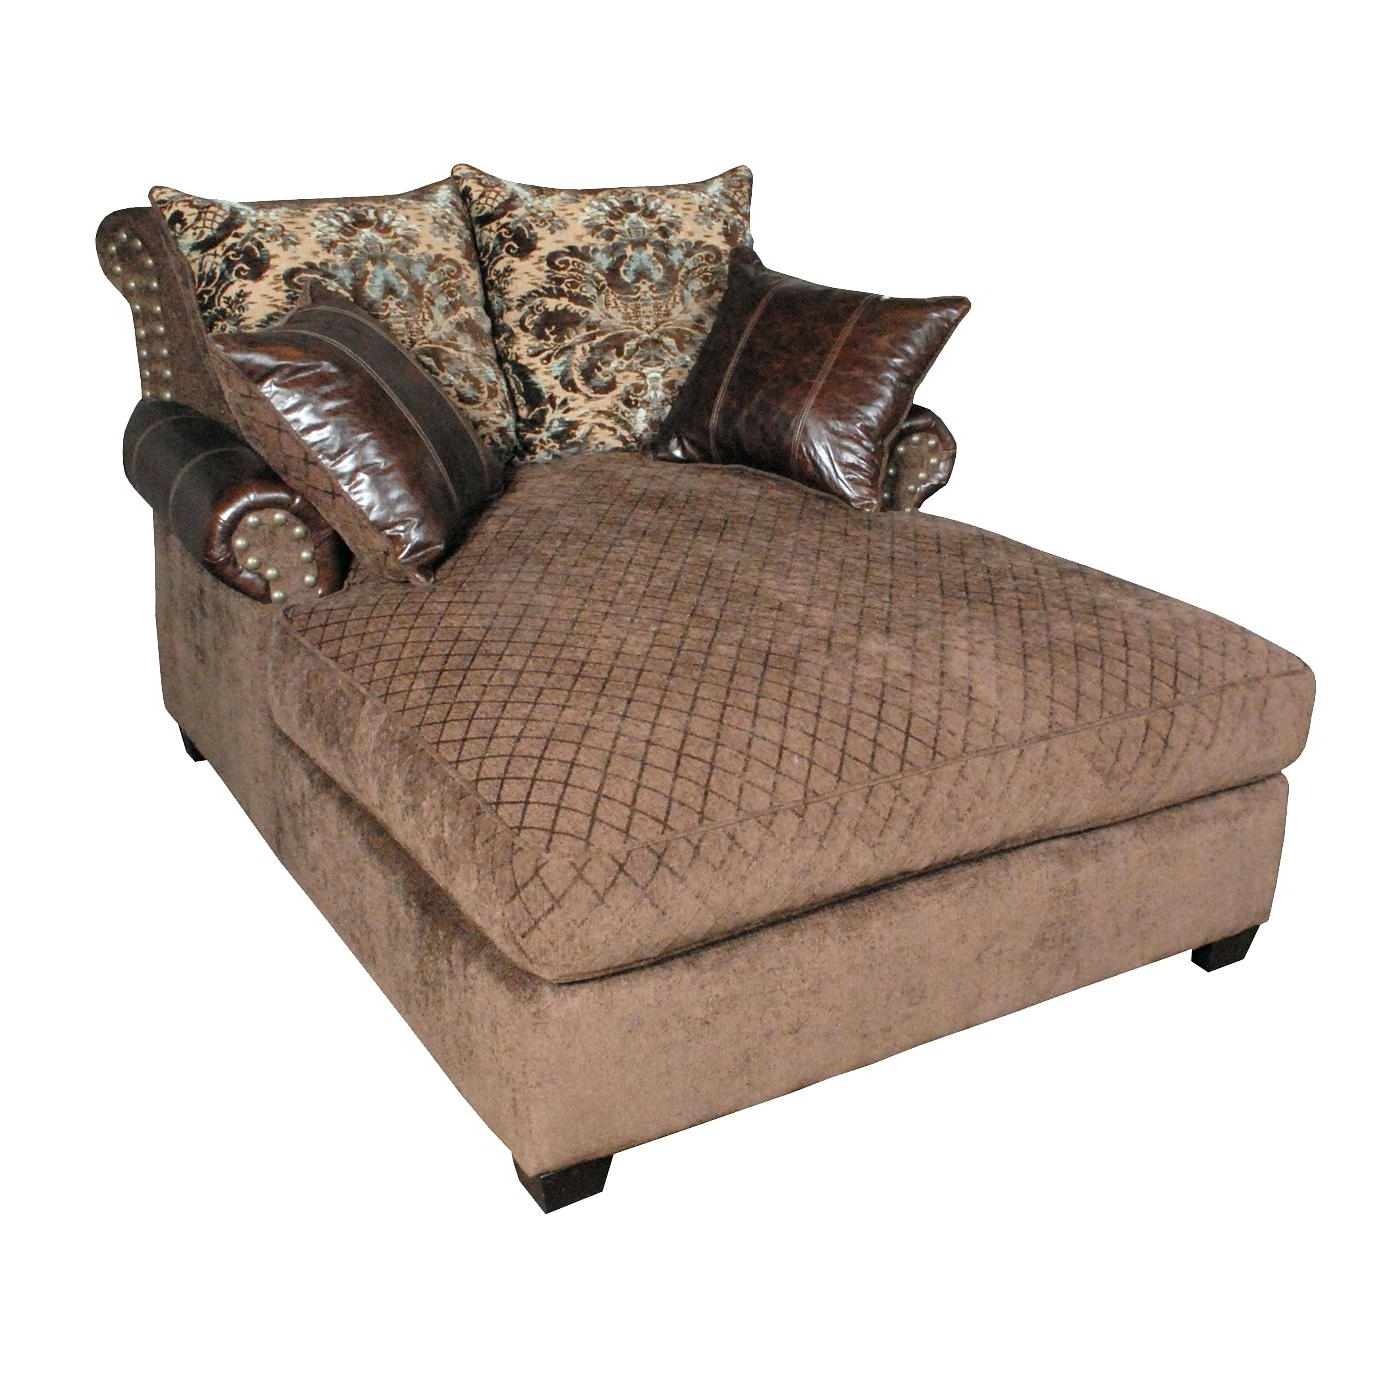 Favorite Double Chaise Lounge Chair Cover • Chair Covers Ideas Intended For Oversized Chaise Lounge Chairs (View 1 of 15)